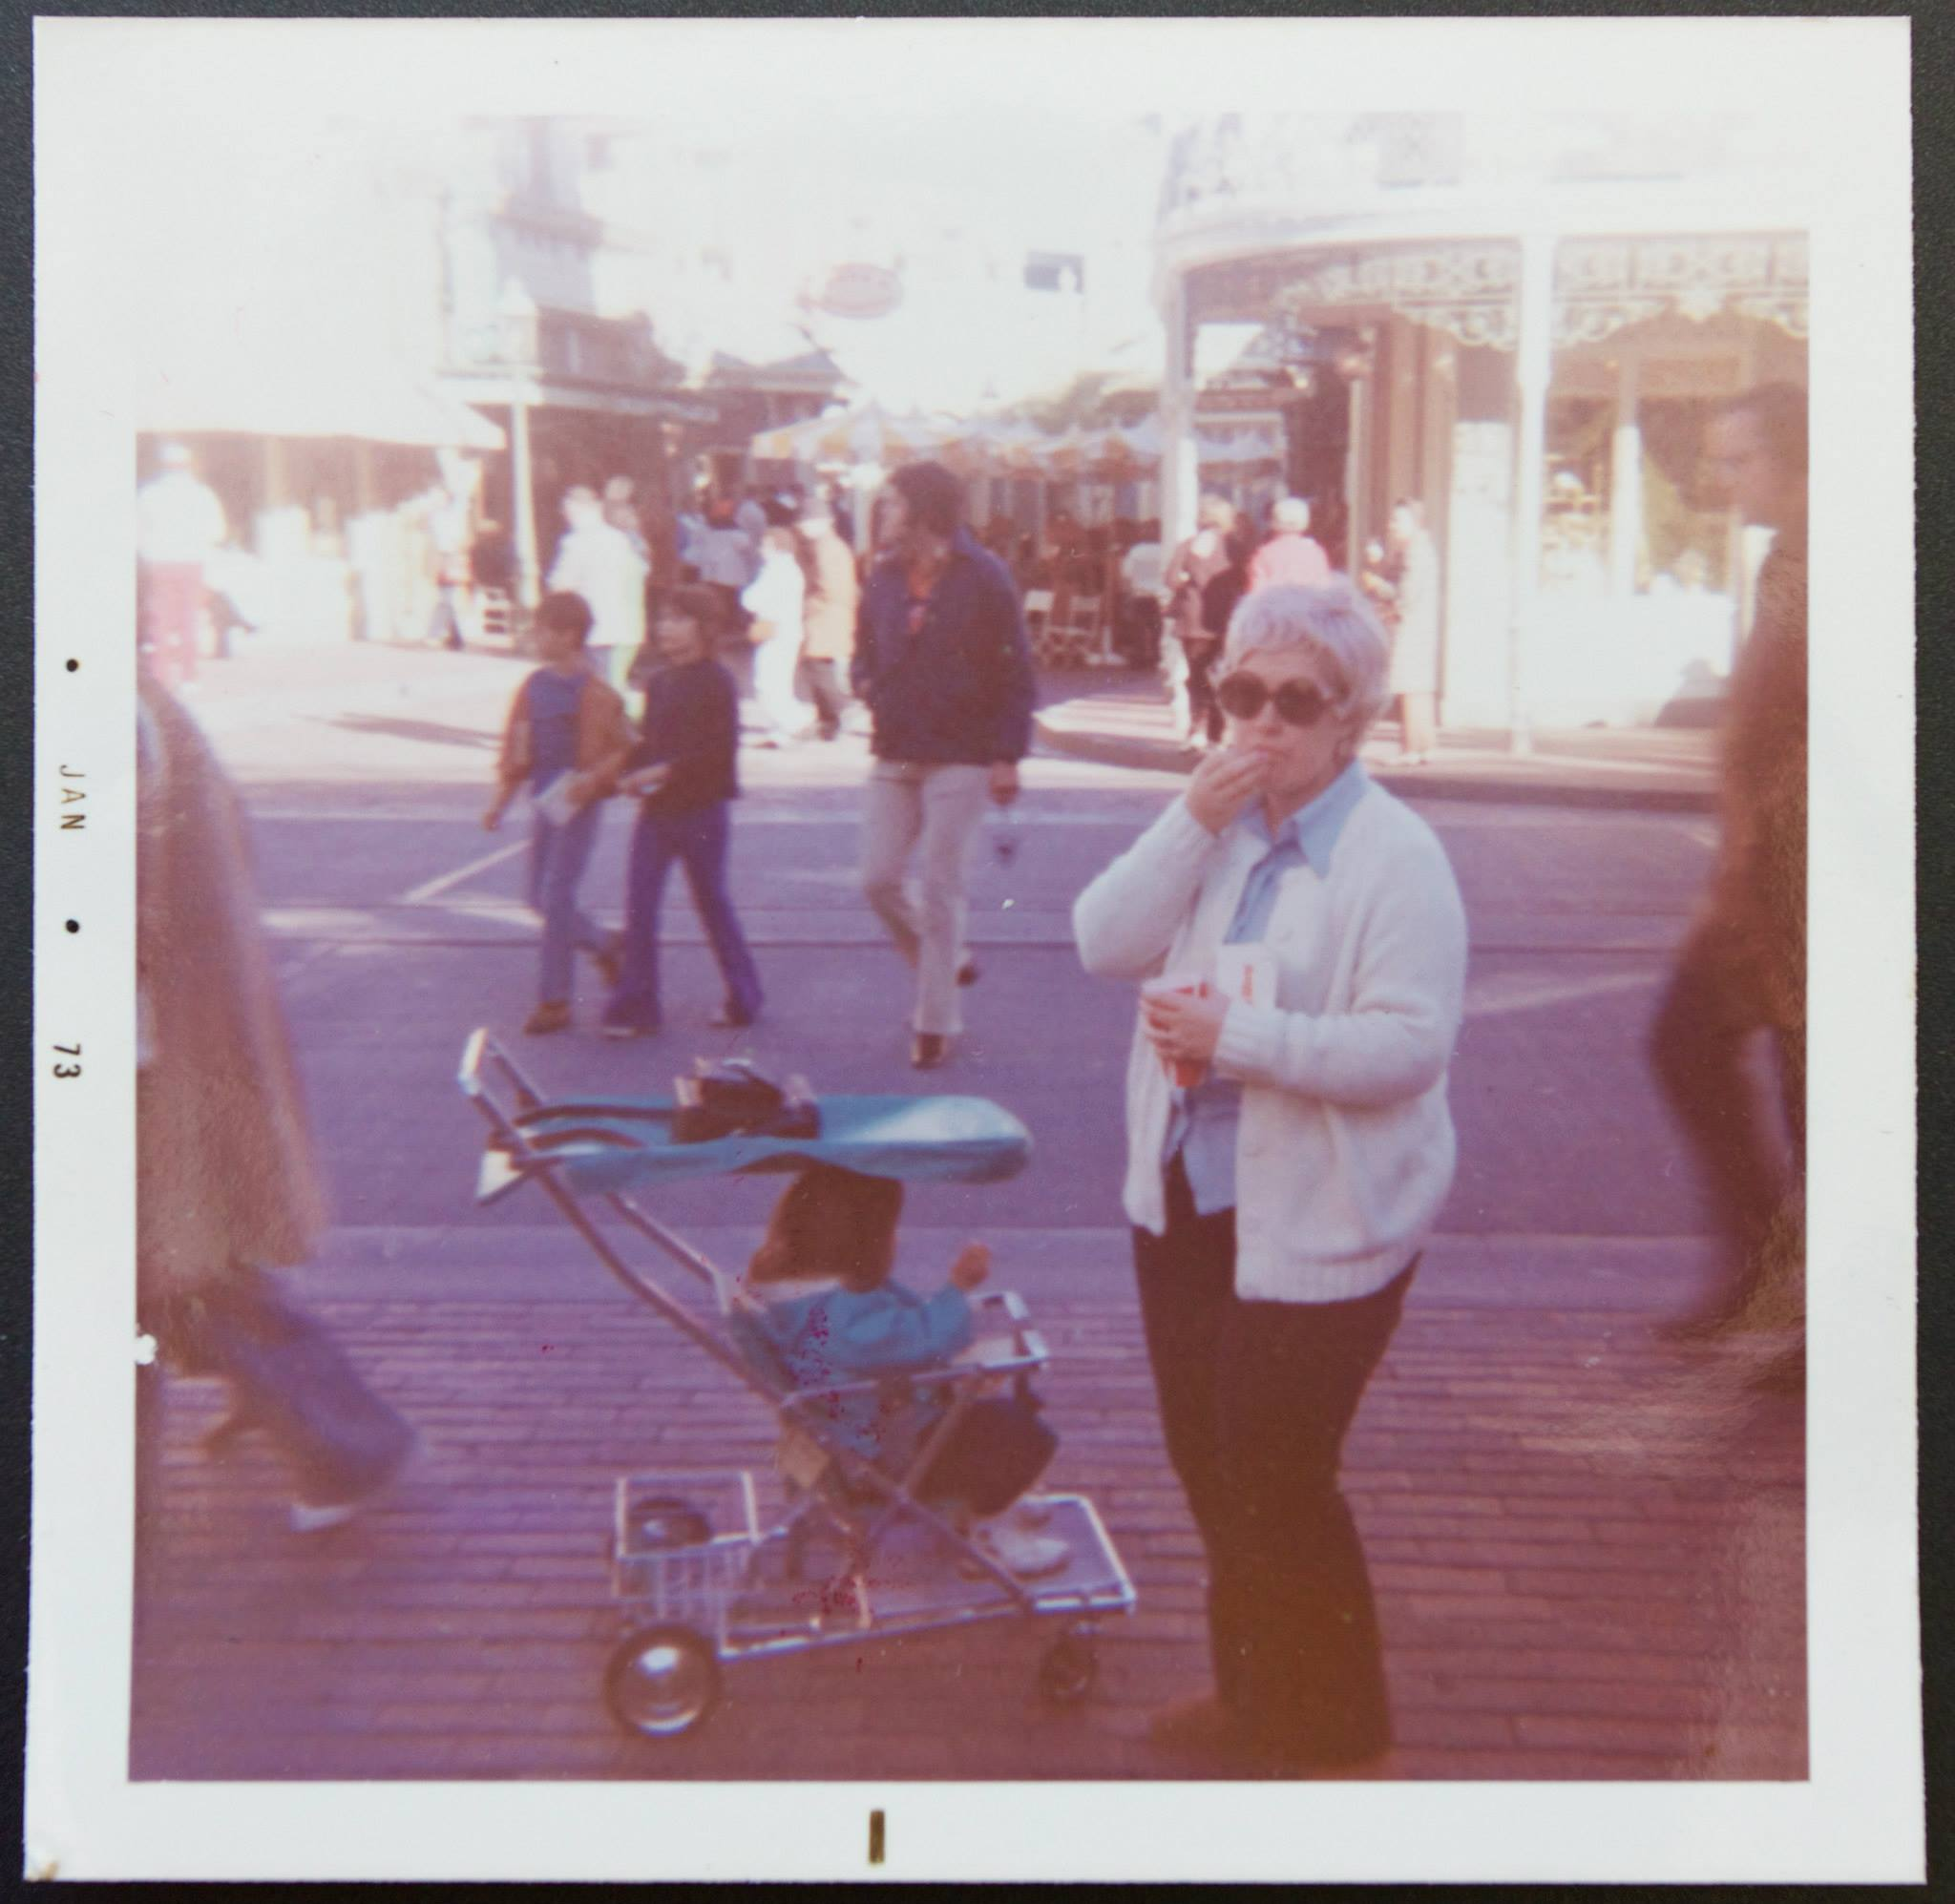 The original rental strollers in Walt Disney World. Not from 1971 but definitely the 70's on Main St. USA with my mom.